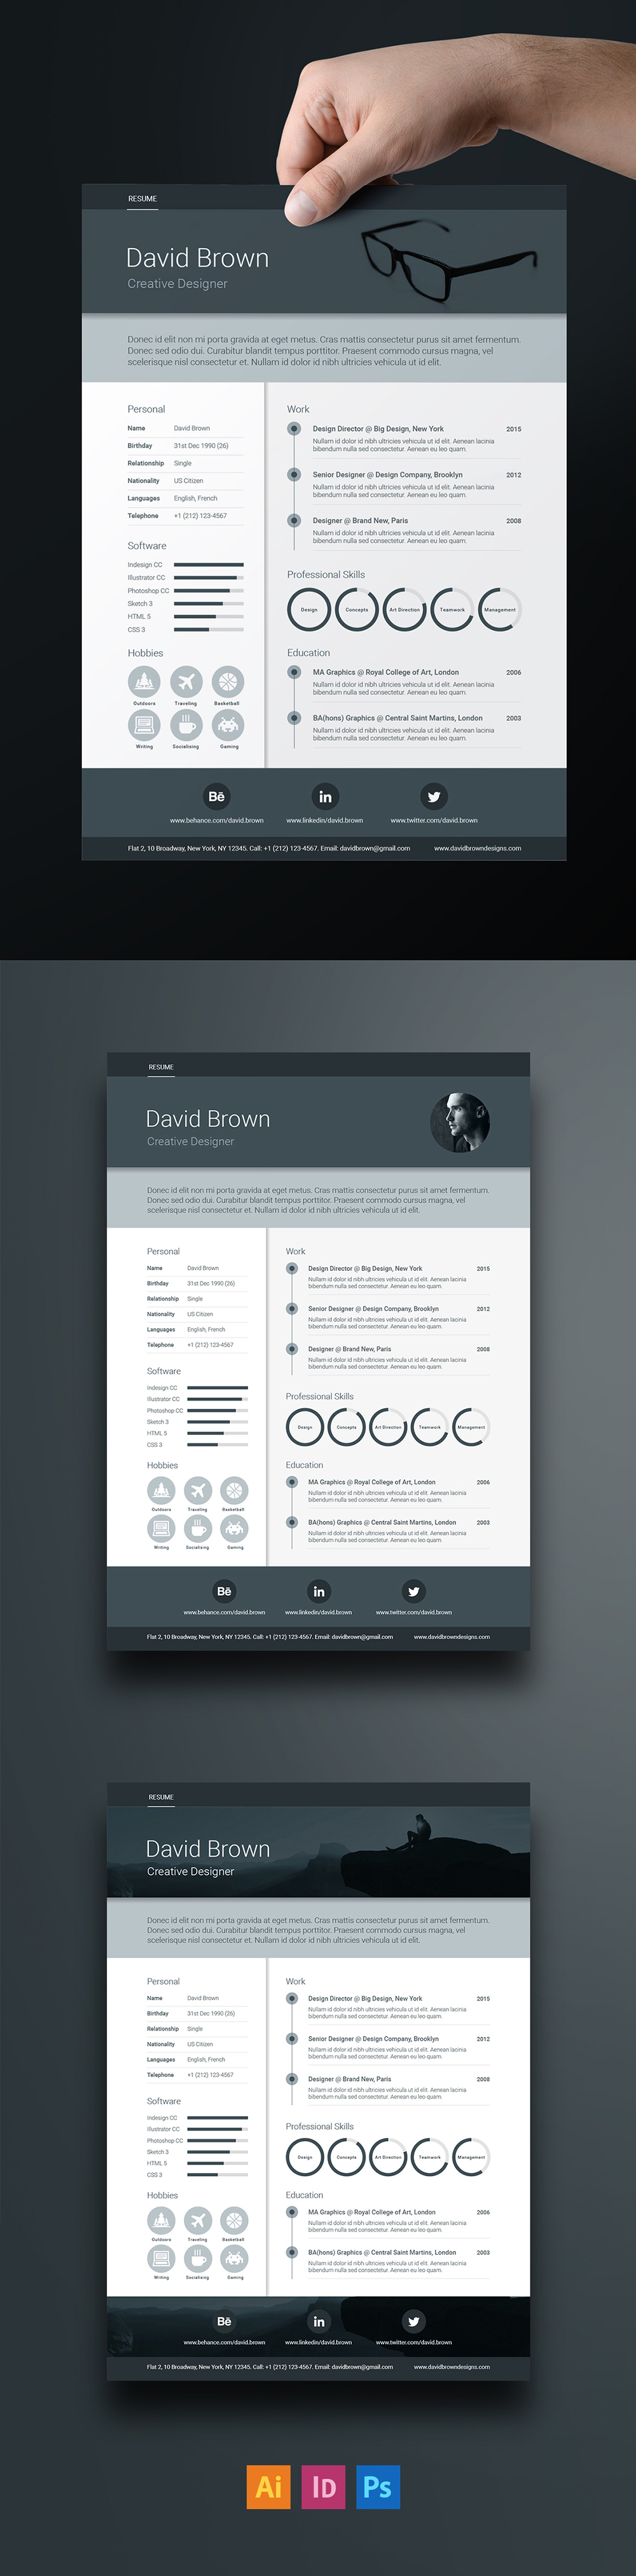 Free Material Resume Template Is Inspired By GoogleS Visual